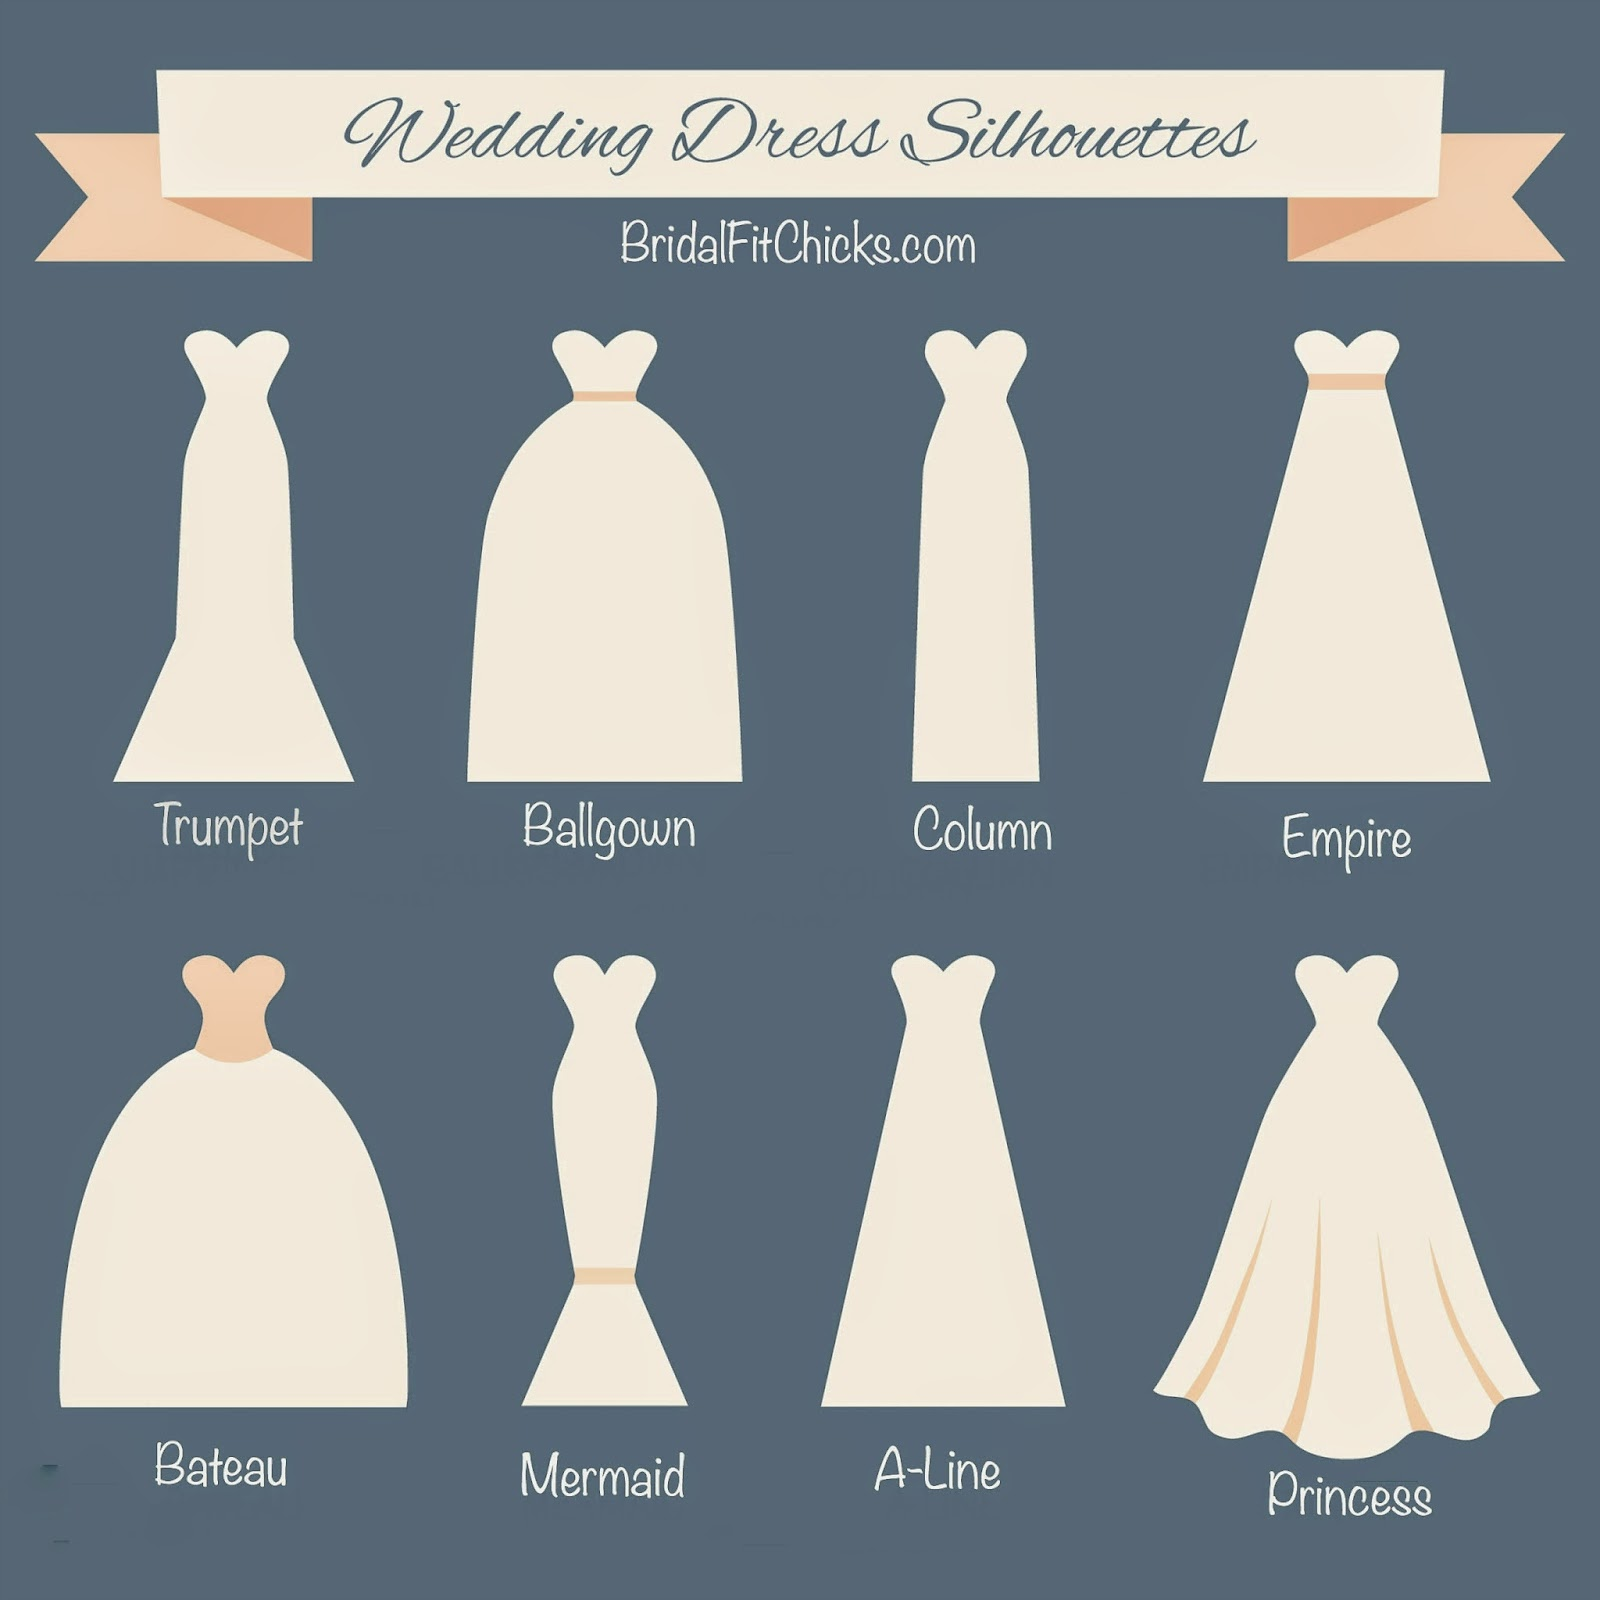 Bridal Fit Chicks: A Guide To Shop For Your Perfect Dress